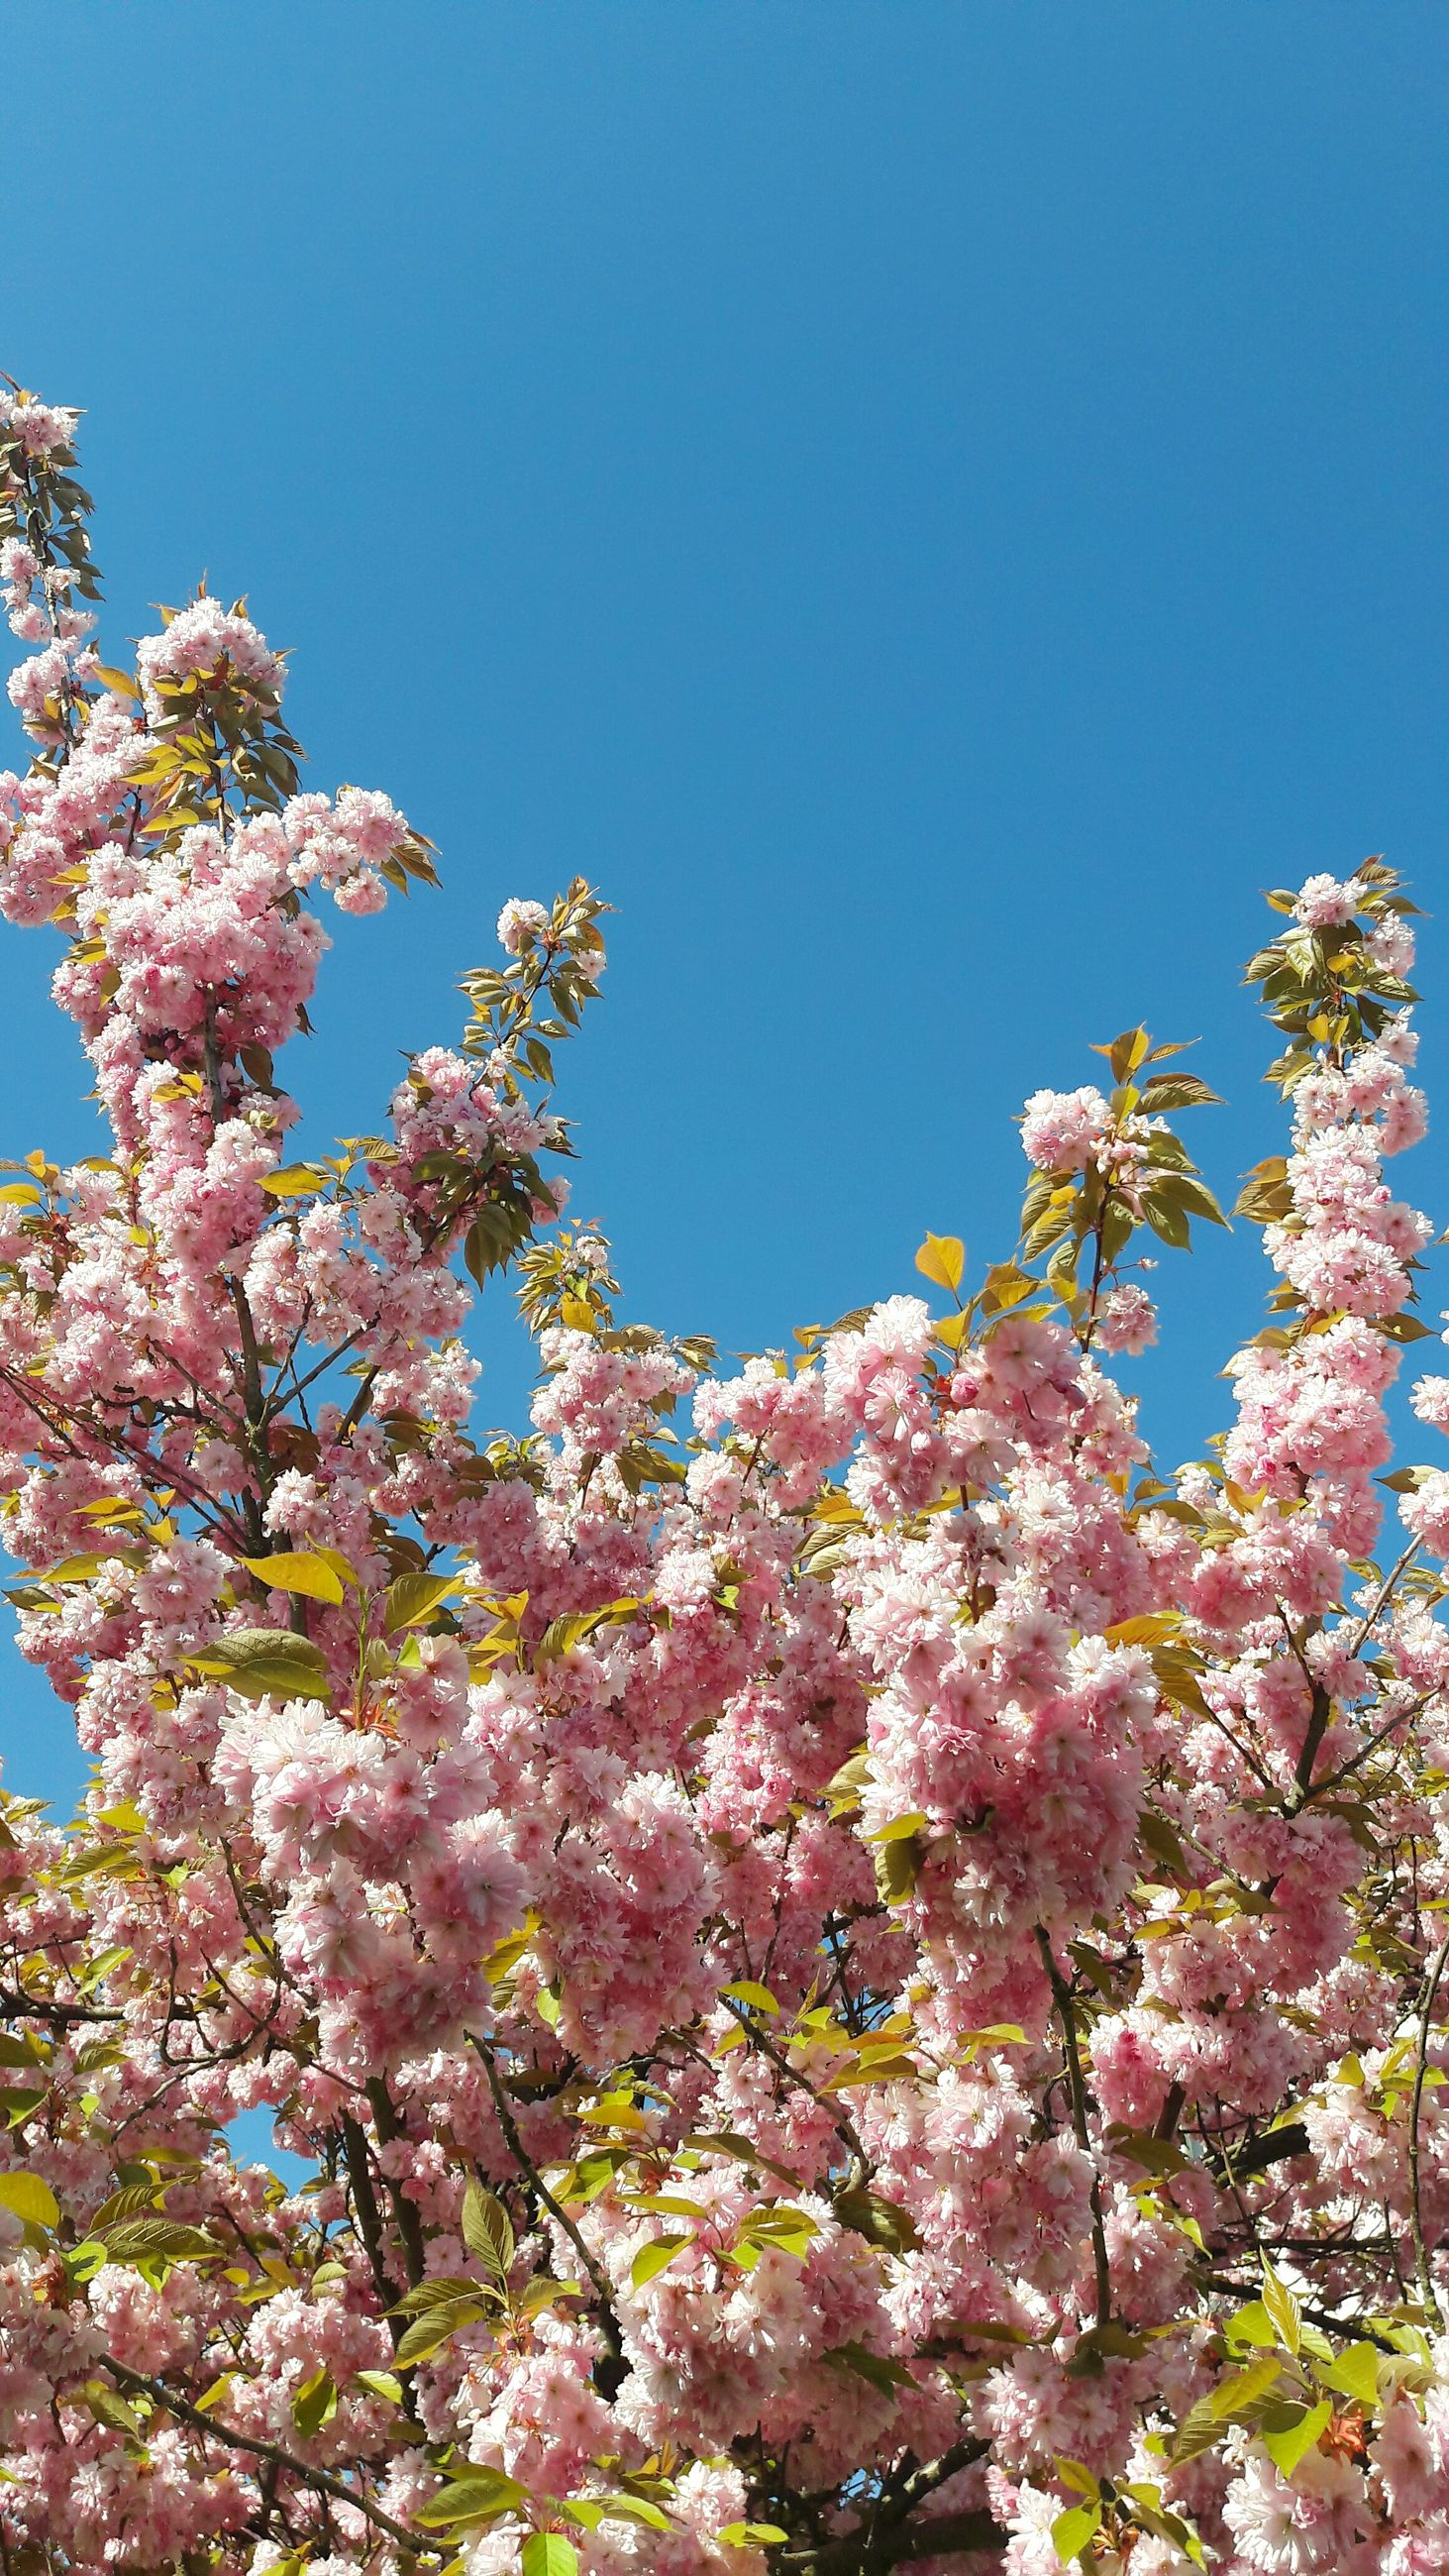 flower, clear sky, low angle view, tree, freshness, growth, beauty in nature, fragility, blossom, branch, blue, cherry blossom, nature, cherry tree, blooming, in bloom, springtime, copy space, fruit tree, day